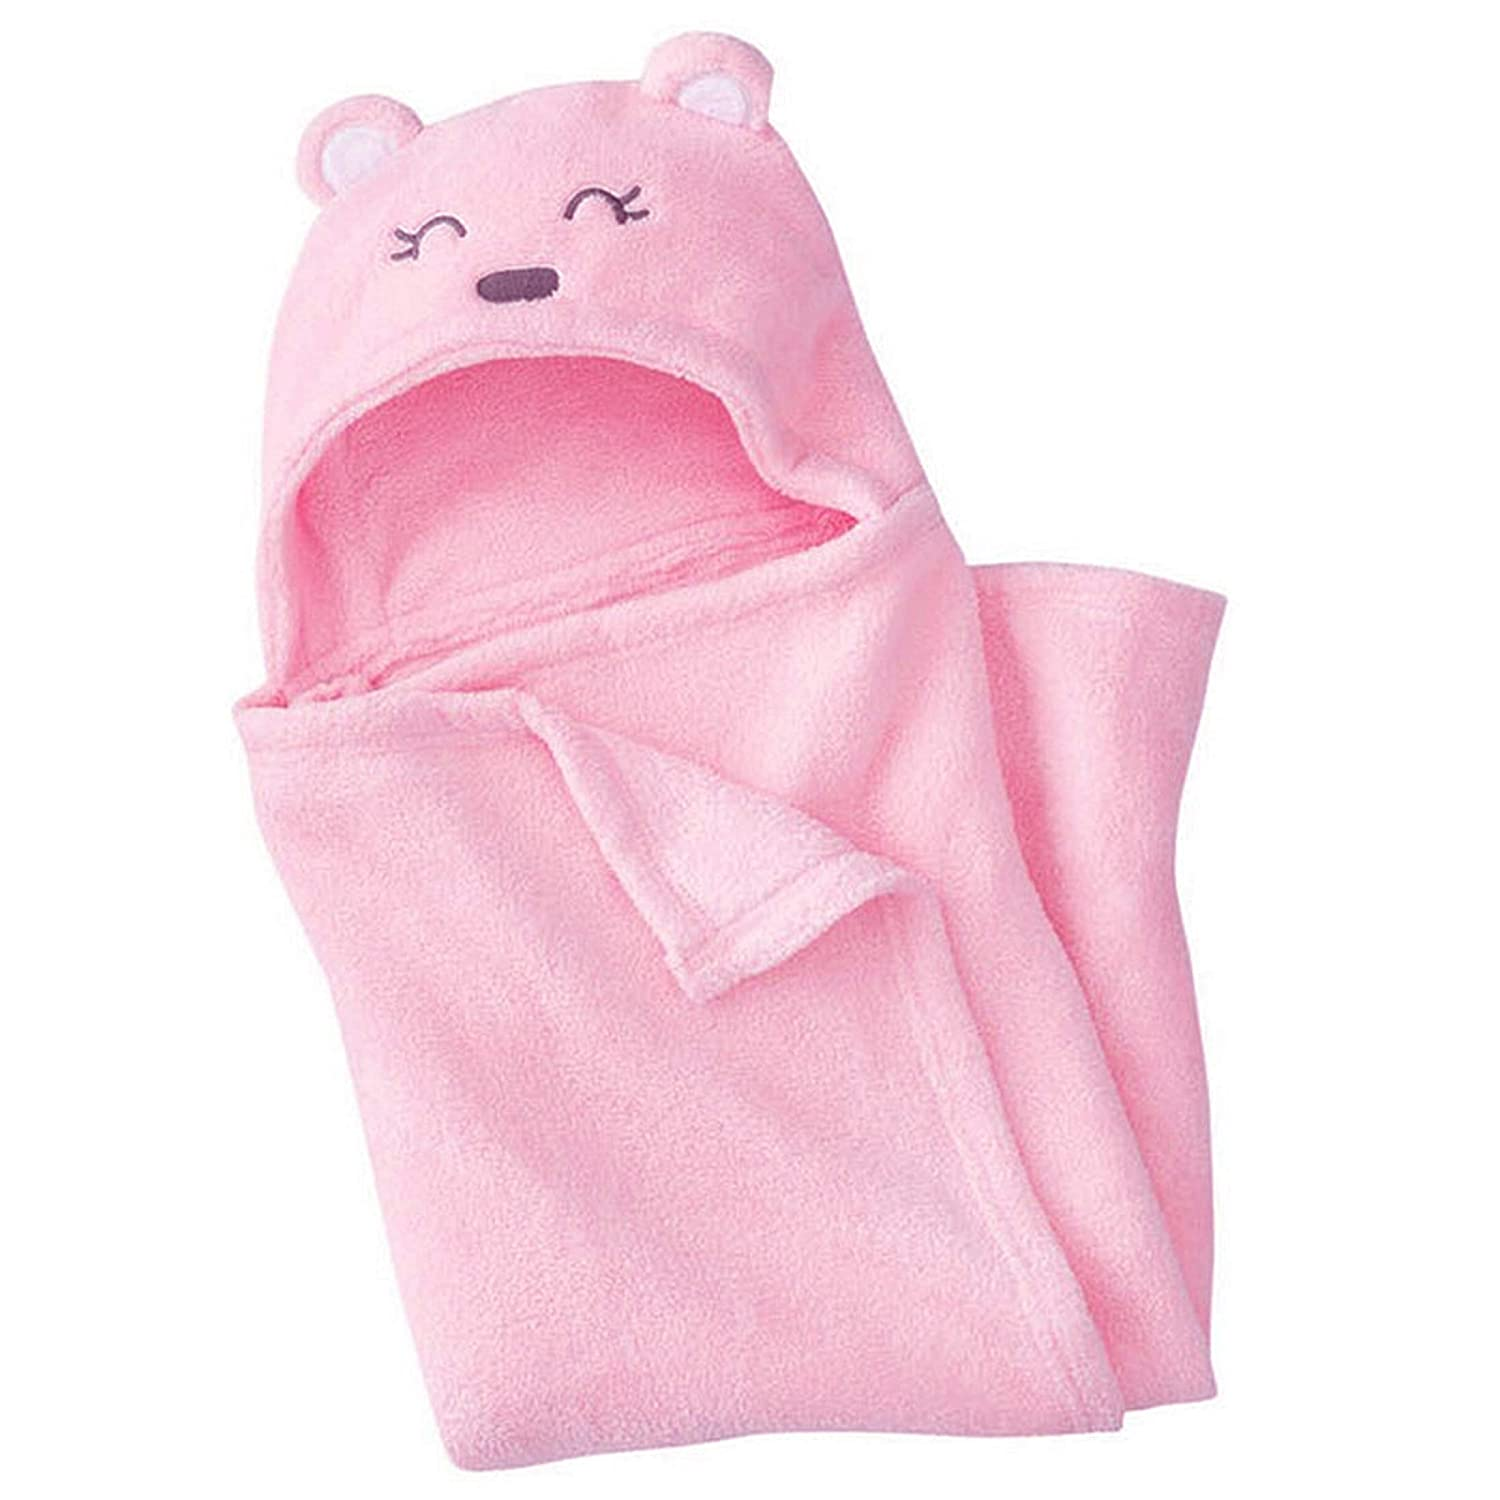 Cutieco AMZ-C1-Meow Luxury Series Super Soft Baby Sleeping Bag for New Born Babies (Pink)